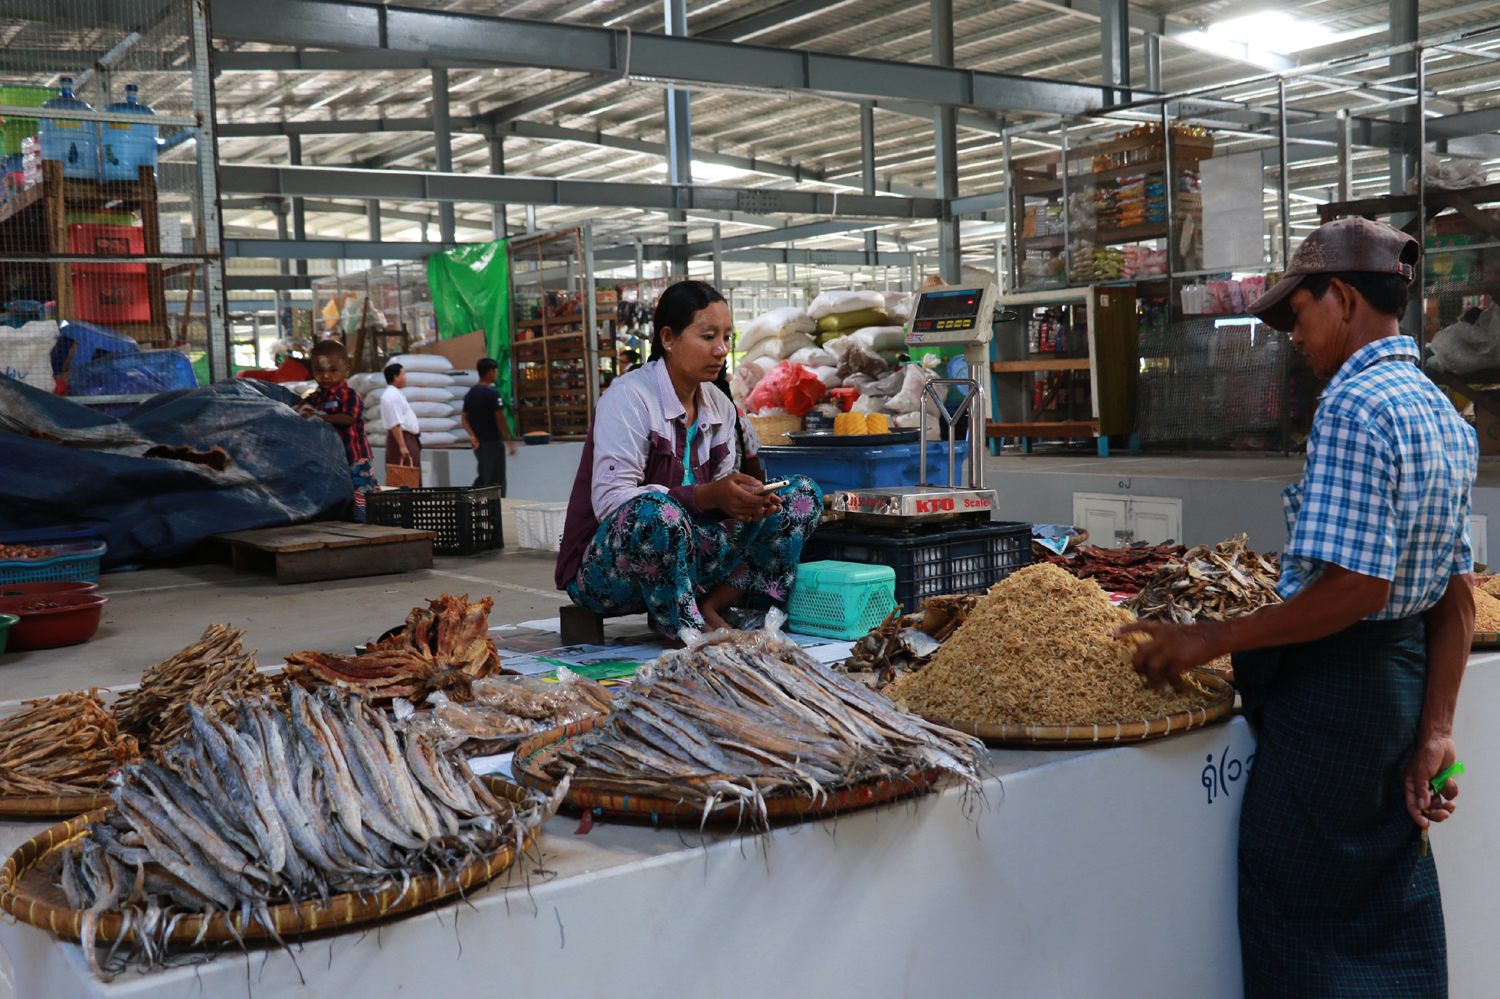 Dried seafood is seen inside the market. [Photo: China Plus/Tu Yun]